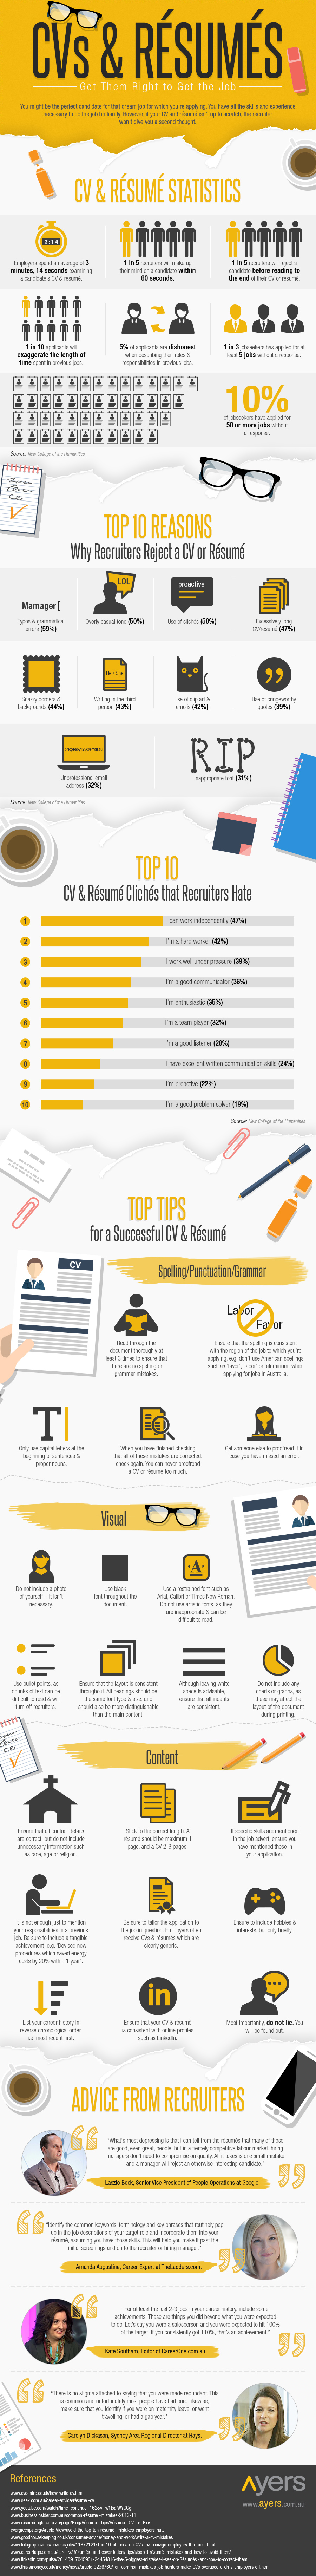 Top Tips For Writing A Successful Cv And Resume Office Skills Blog